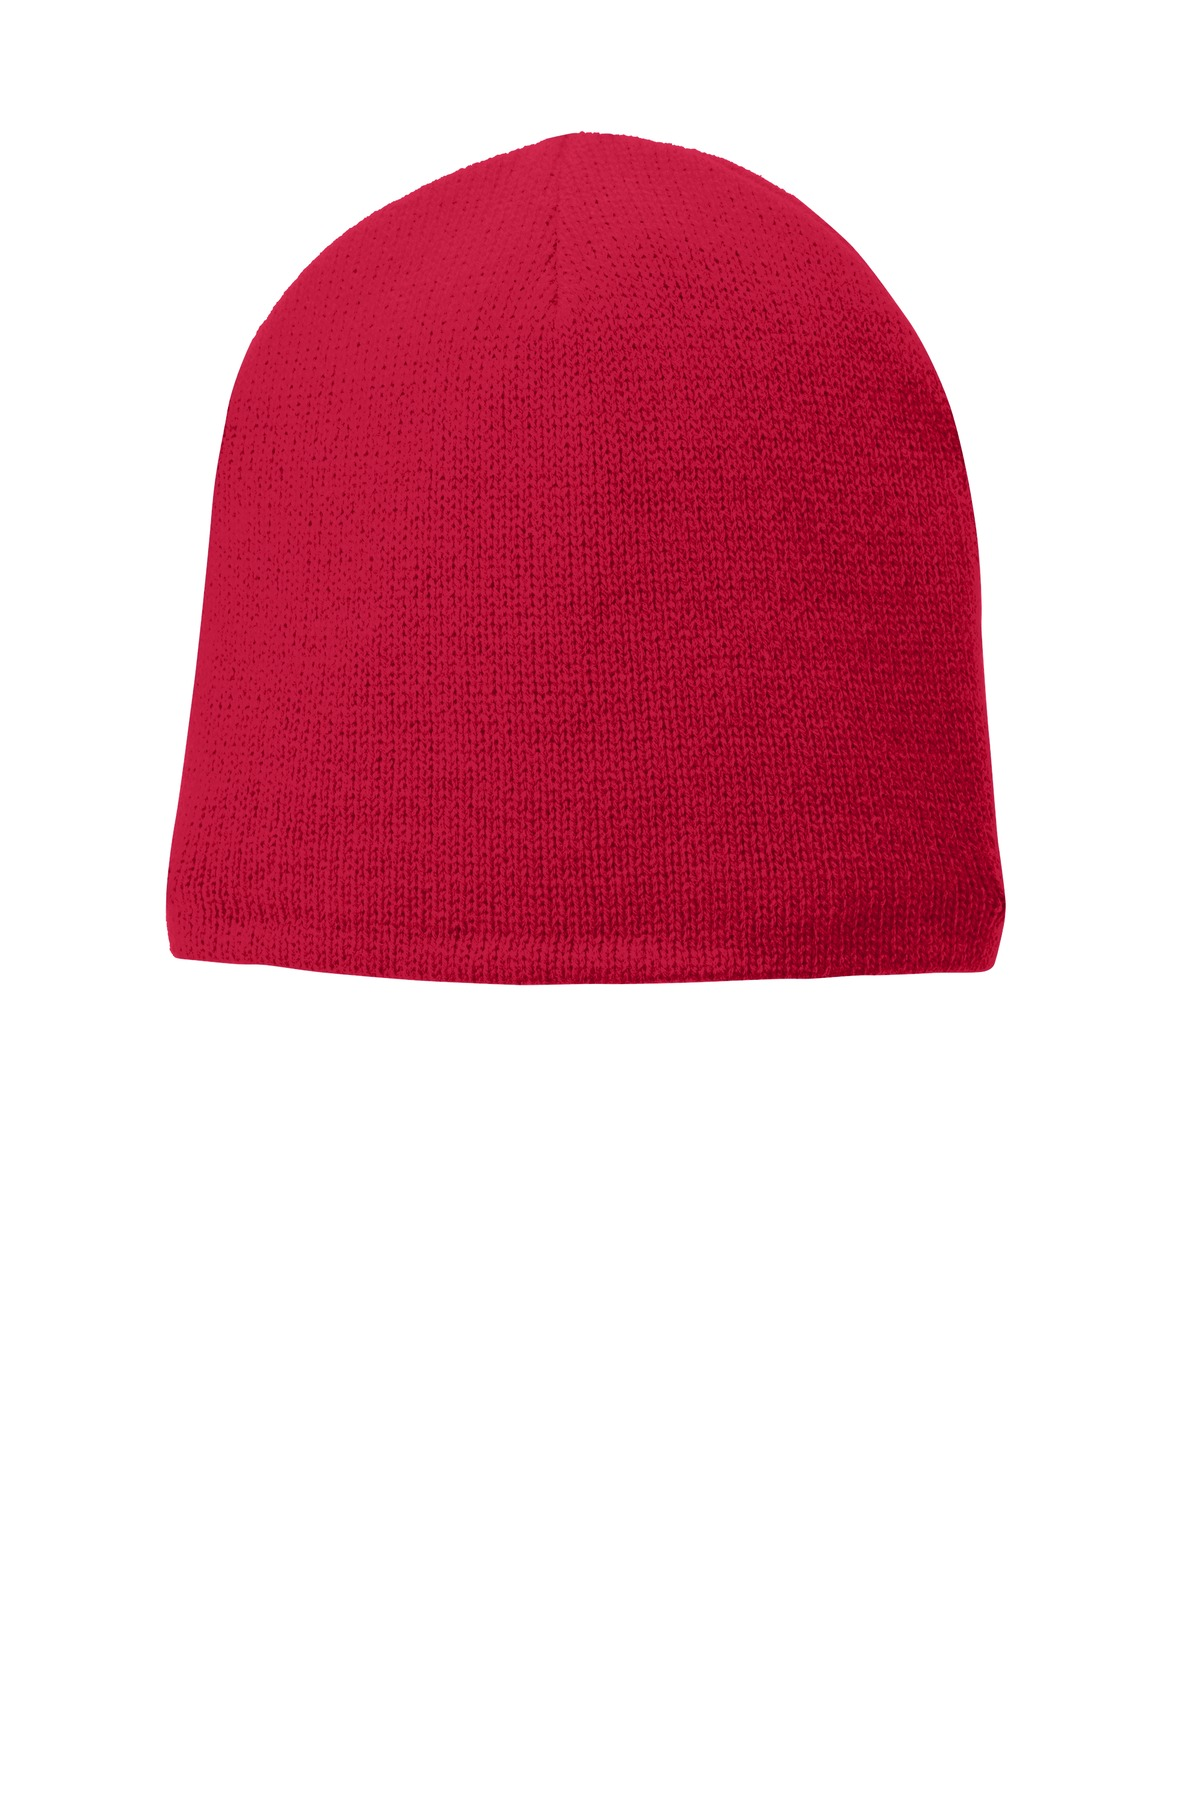 Port & Company ®  Fleece-Lined Beanie Cap. CP91L - Athletic Red